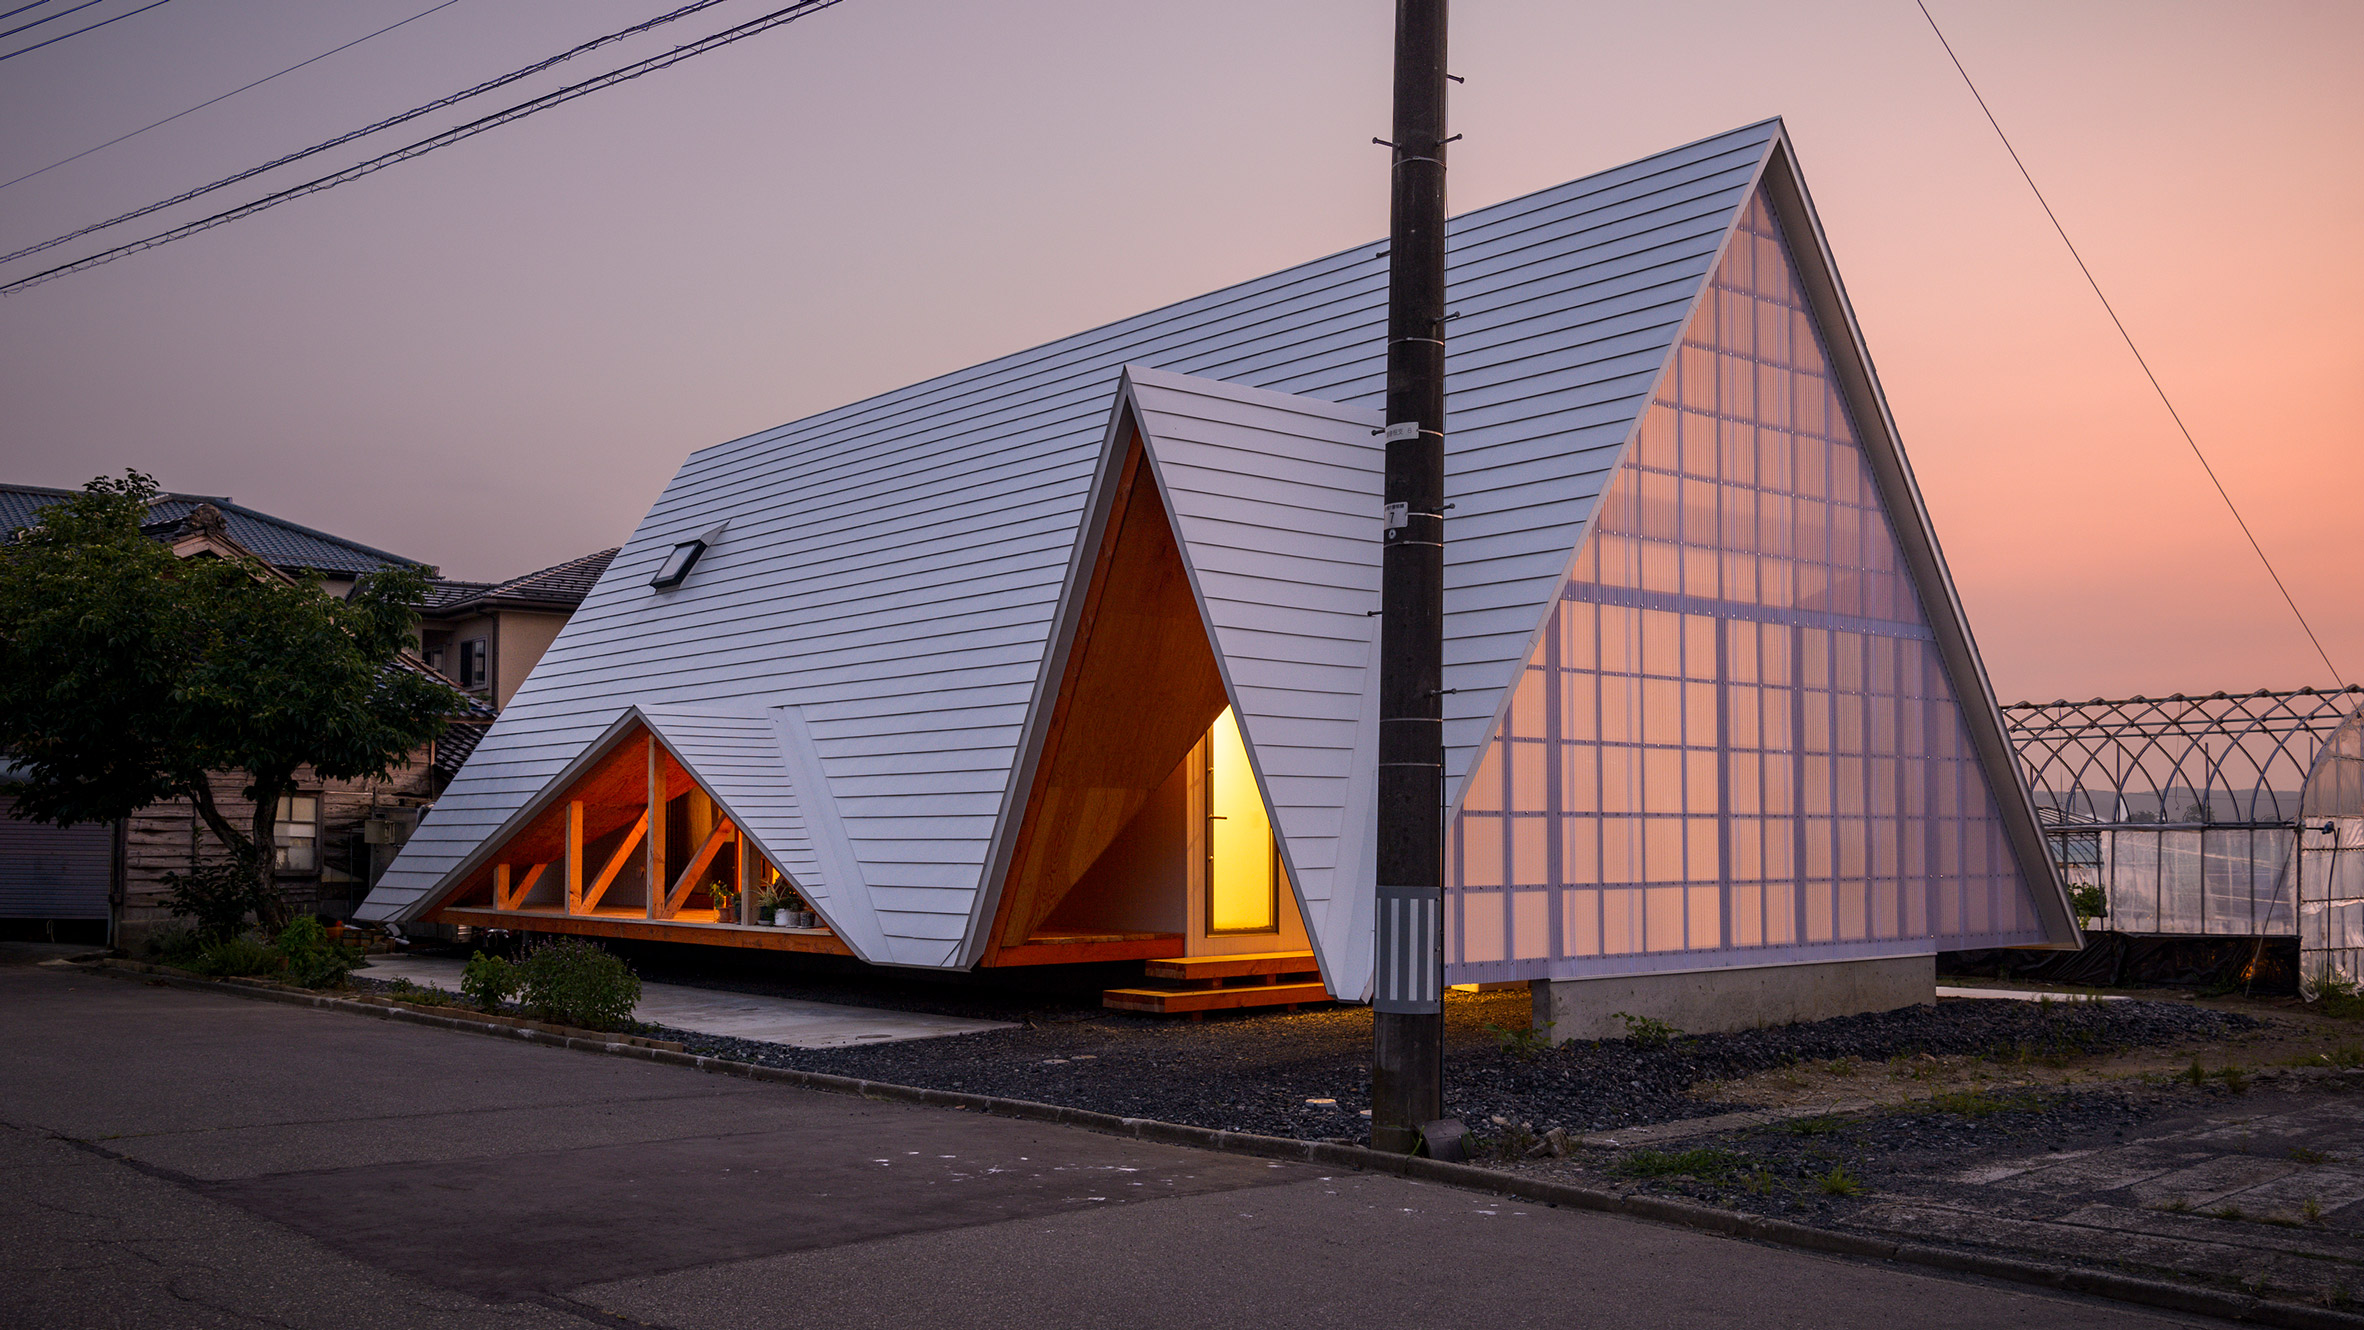 House shaped like a tent glowing at dusk.